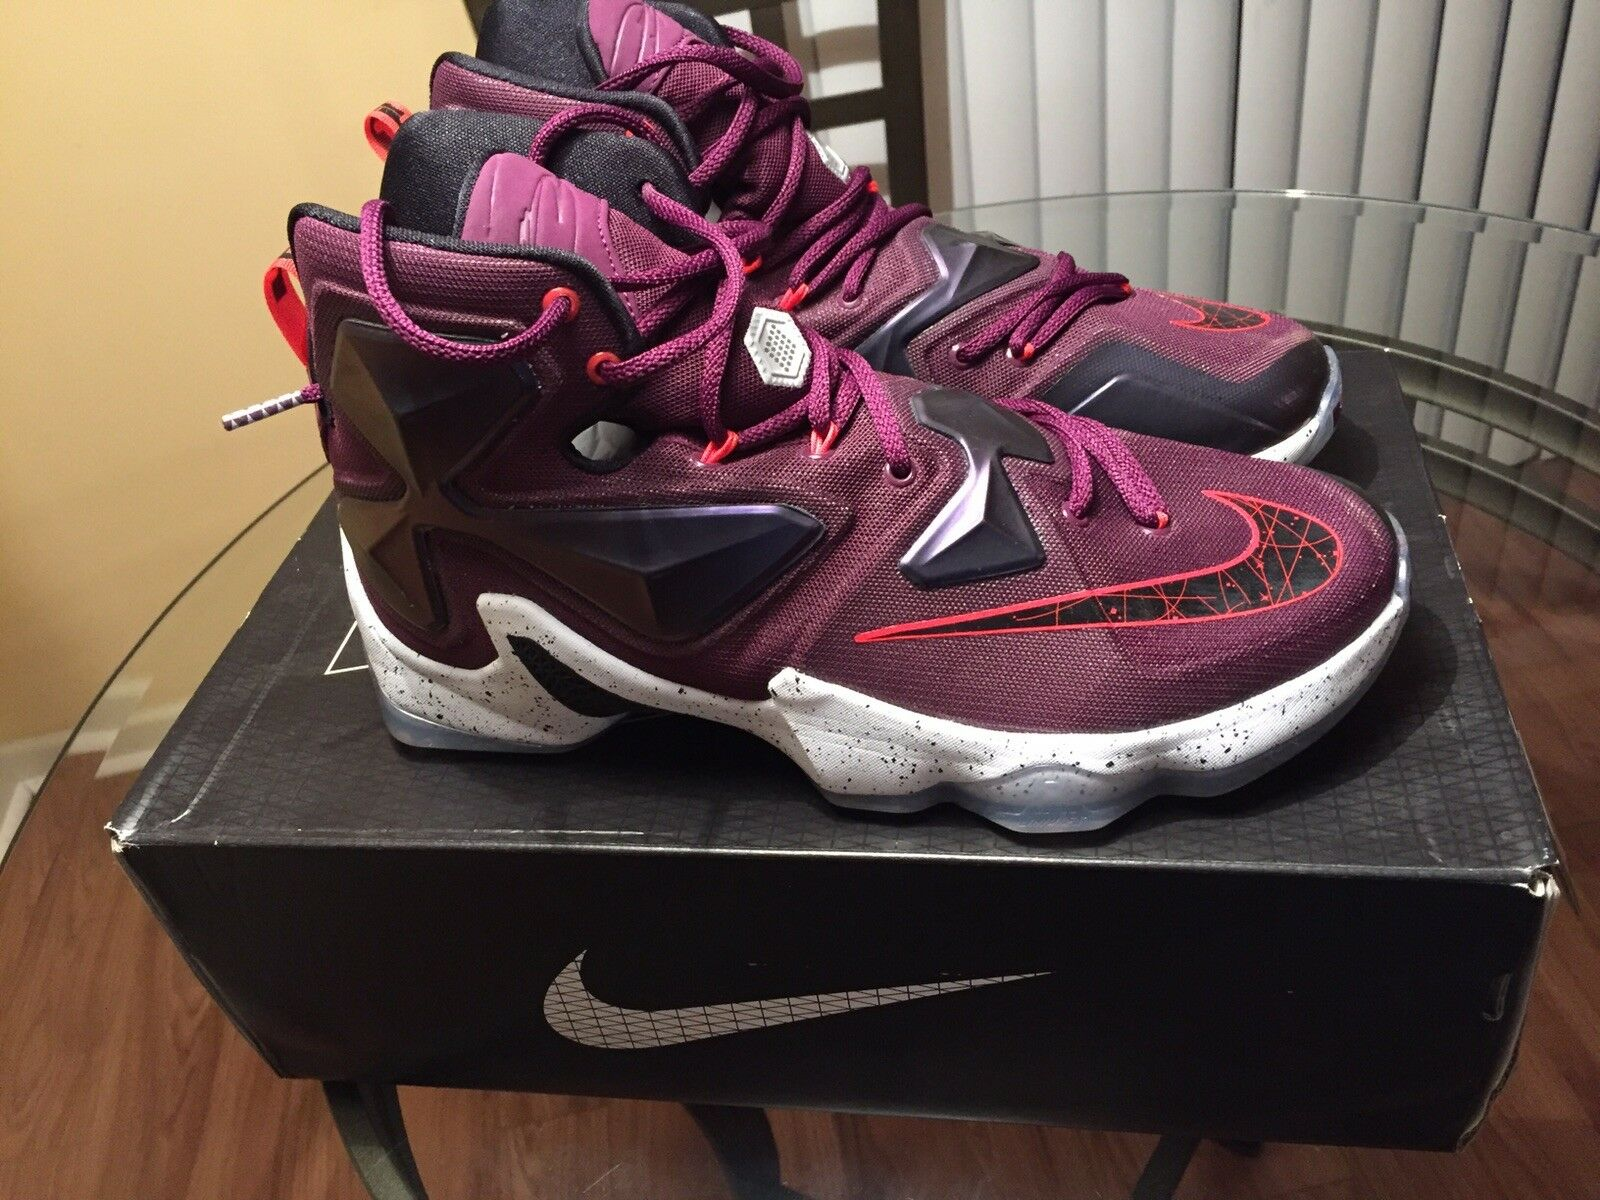 Pre-owned Nike Zoom Lebron XIII Size 9.5